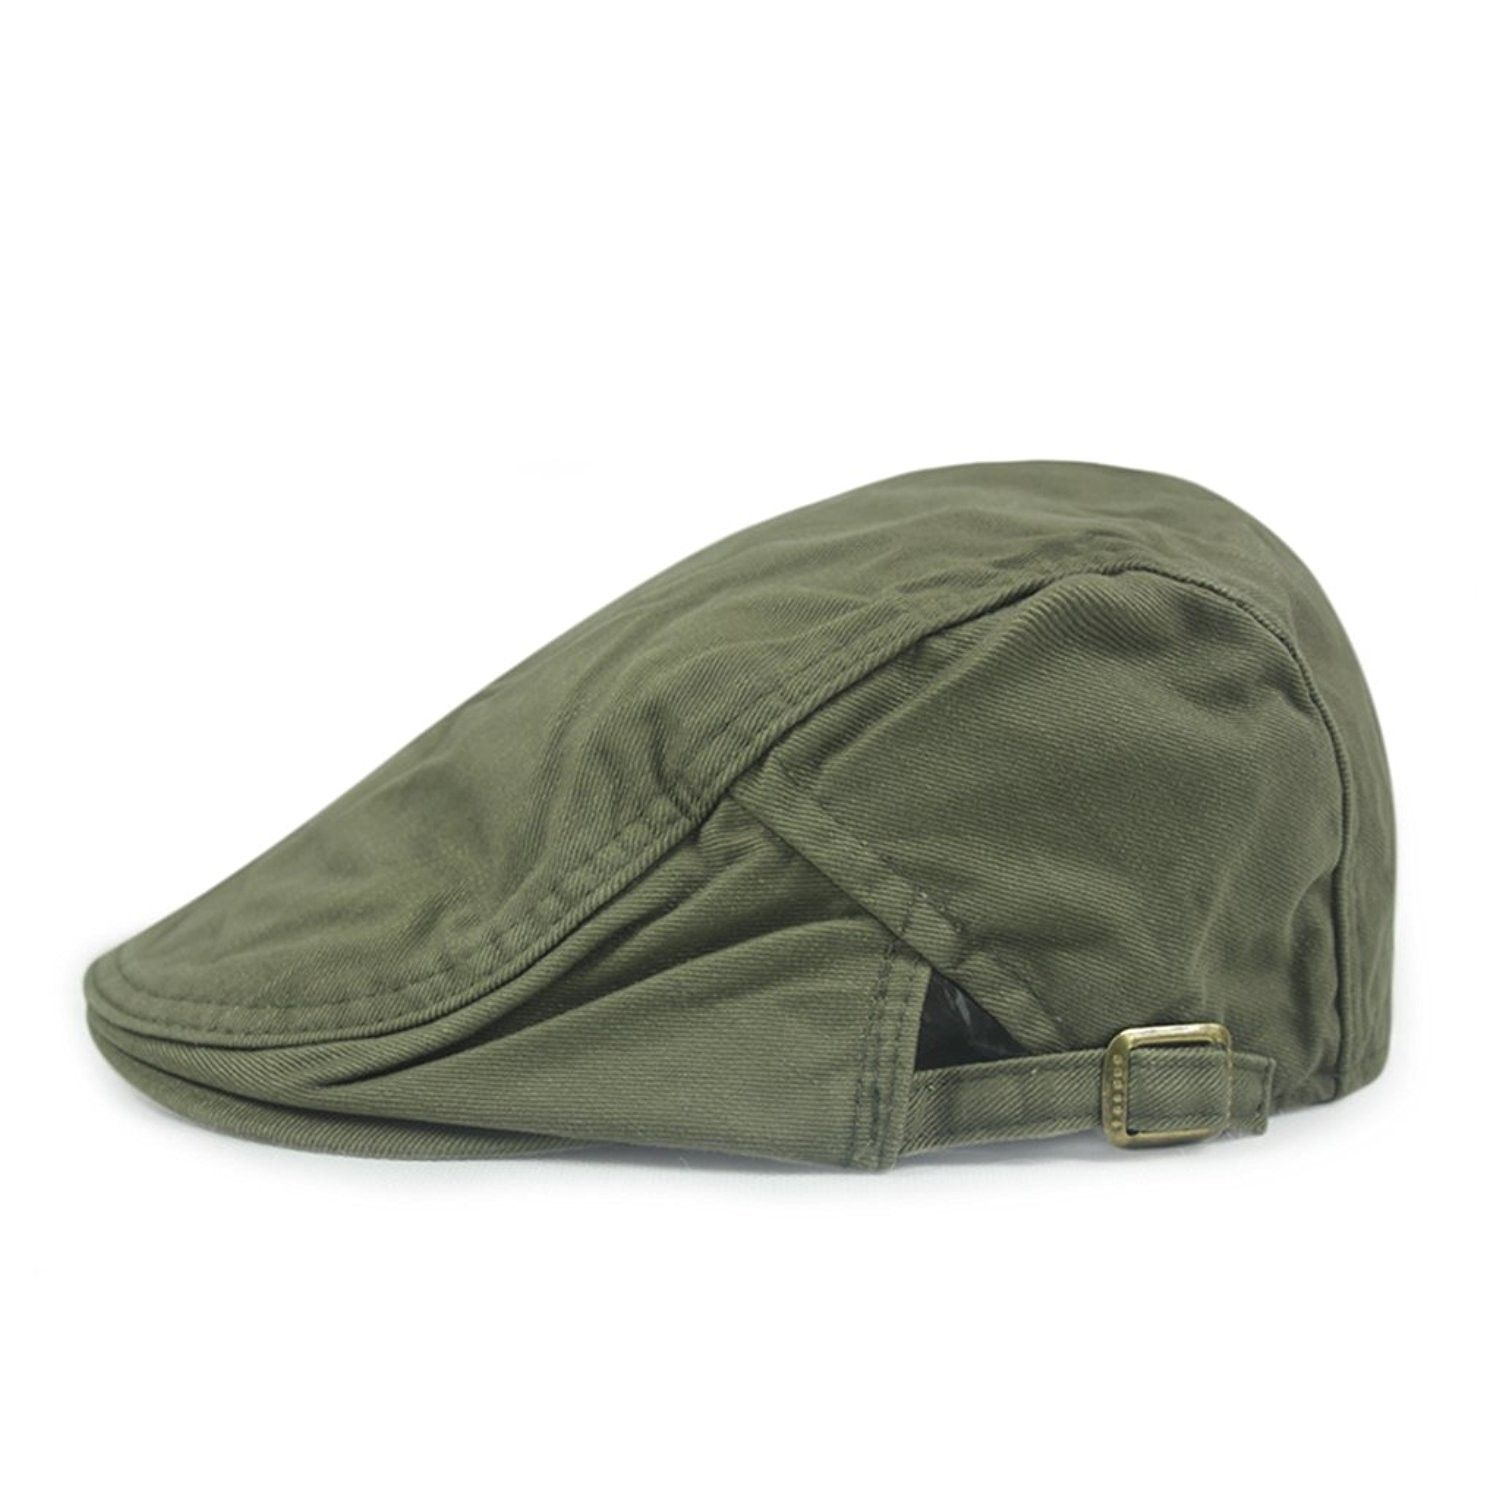 007fb5cbdc0 FASHION Men Womens Duckbill Ivy Cap Golf Driving Flat Cabbie Newsboy Beret  Hat Solid Color - Army Green - CV12F8FXMN5 - Hats   Caps